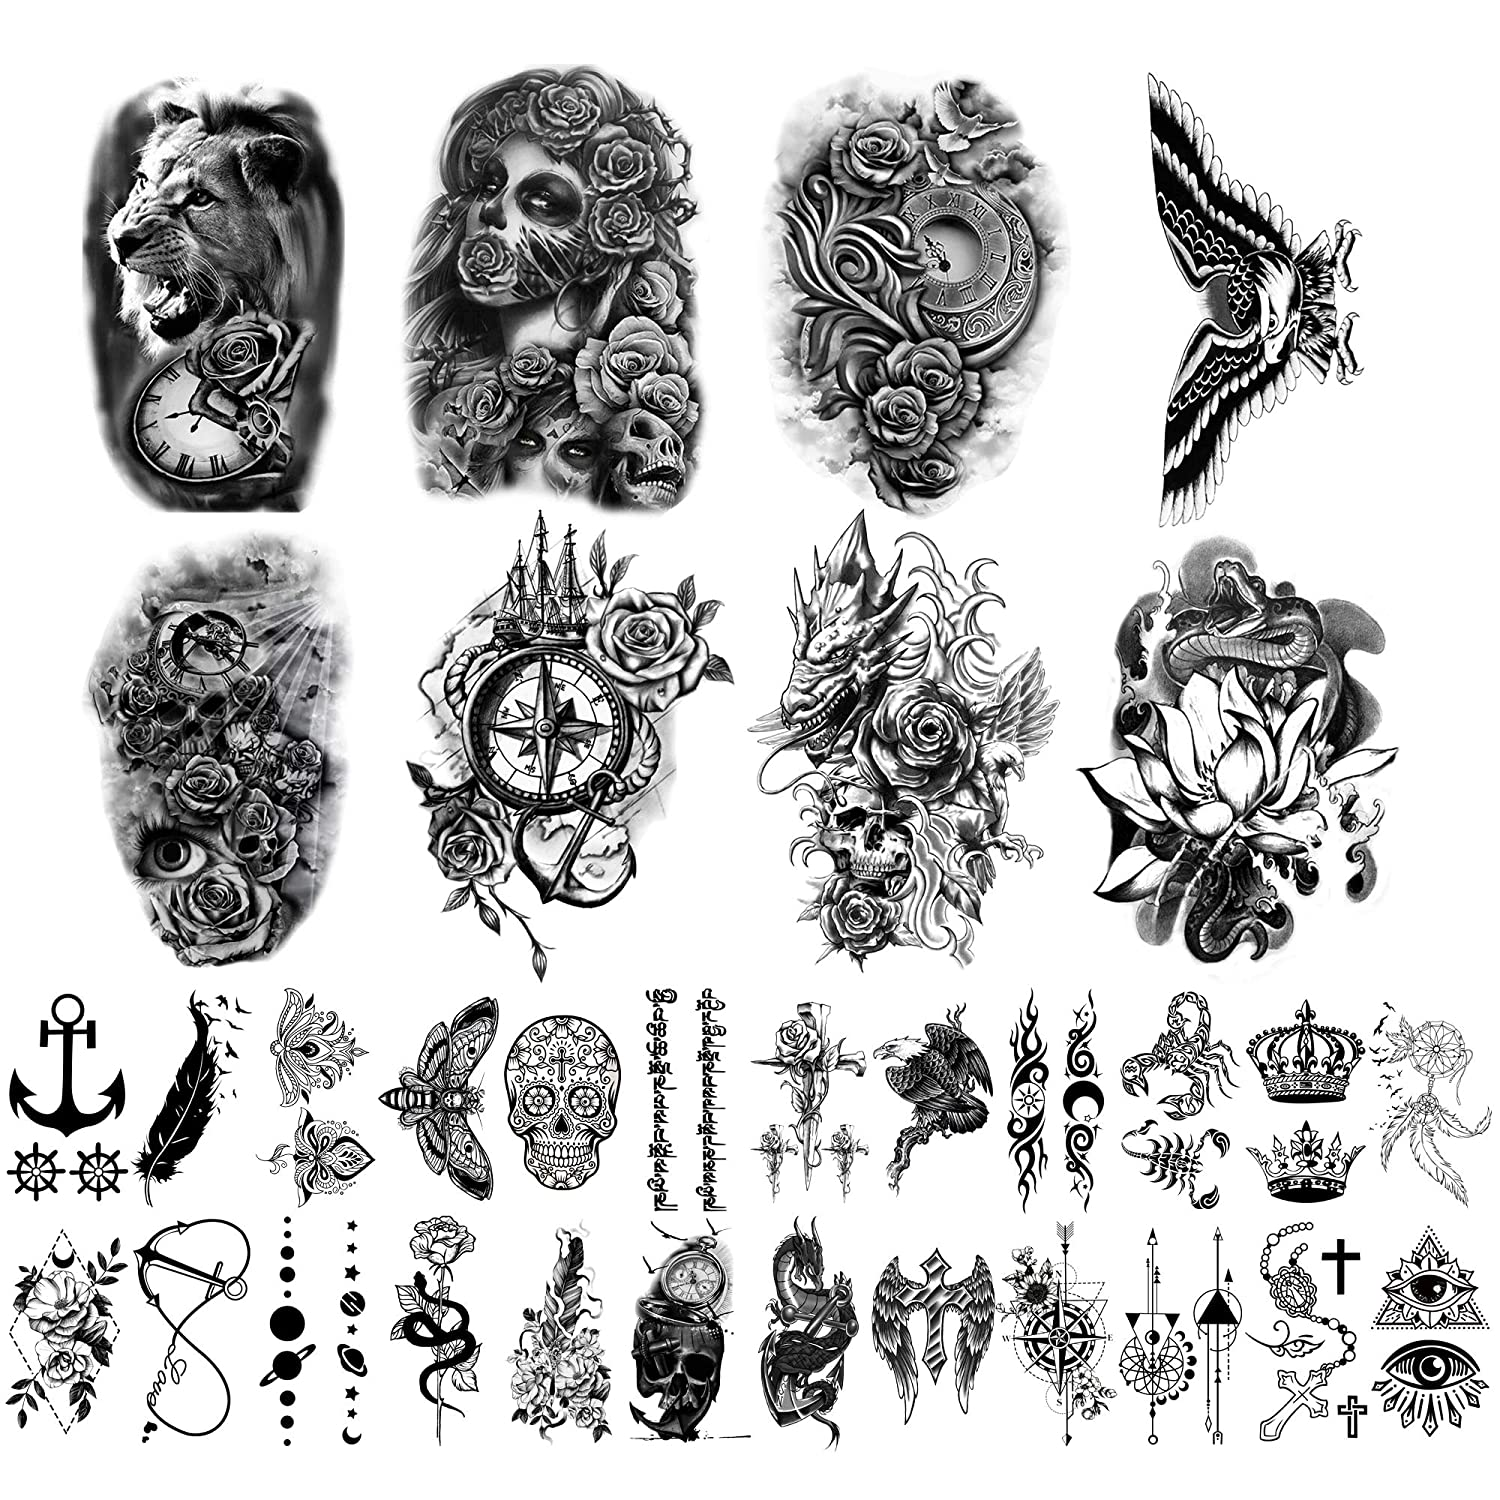 Yazhiji 32 Sheets Temporary Tattoos Stickers, 8 Sheets Fake Body Arm Chest Shoulder Tattoos for Men Women with 24 Sheets Tiny Black Temporary Tattoos